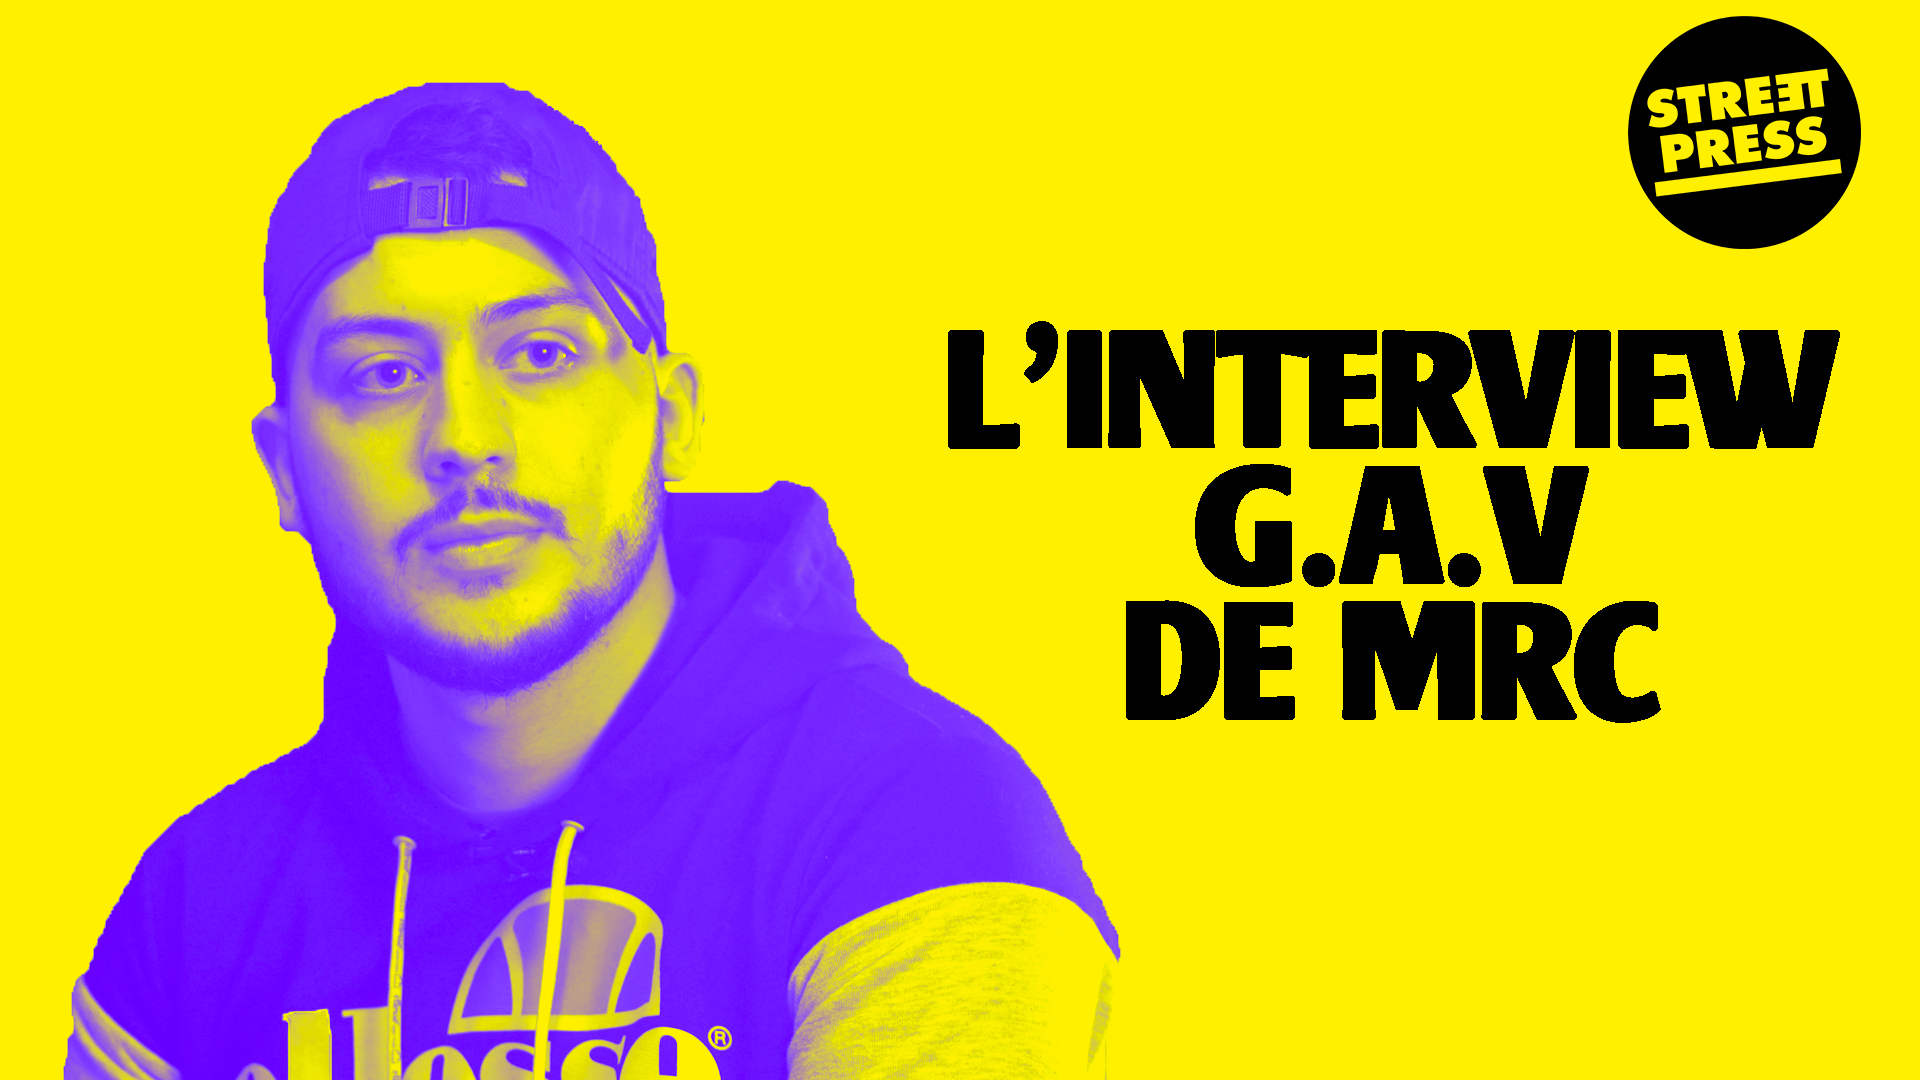 L'interview G.A.V de MRC